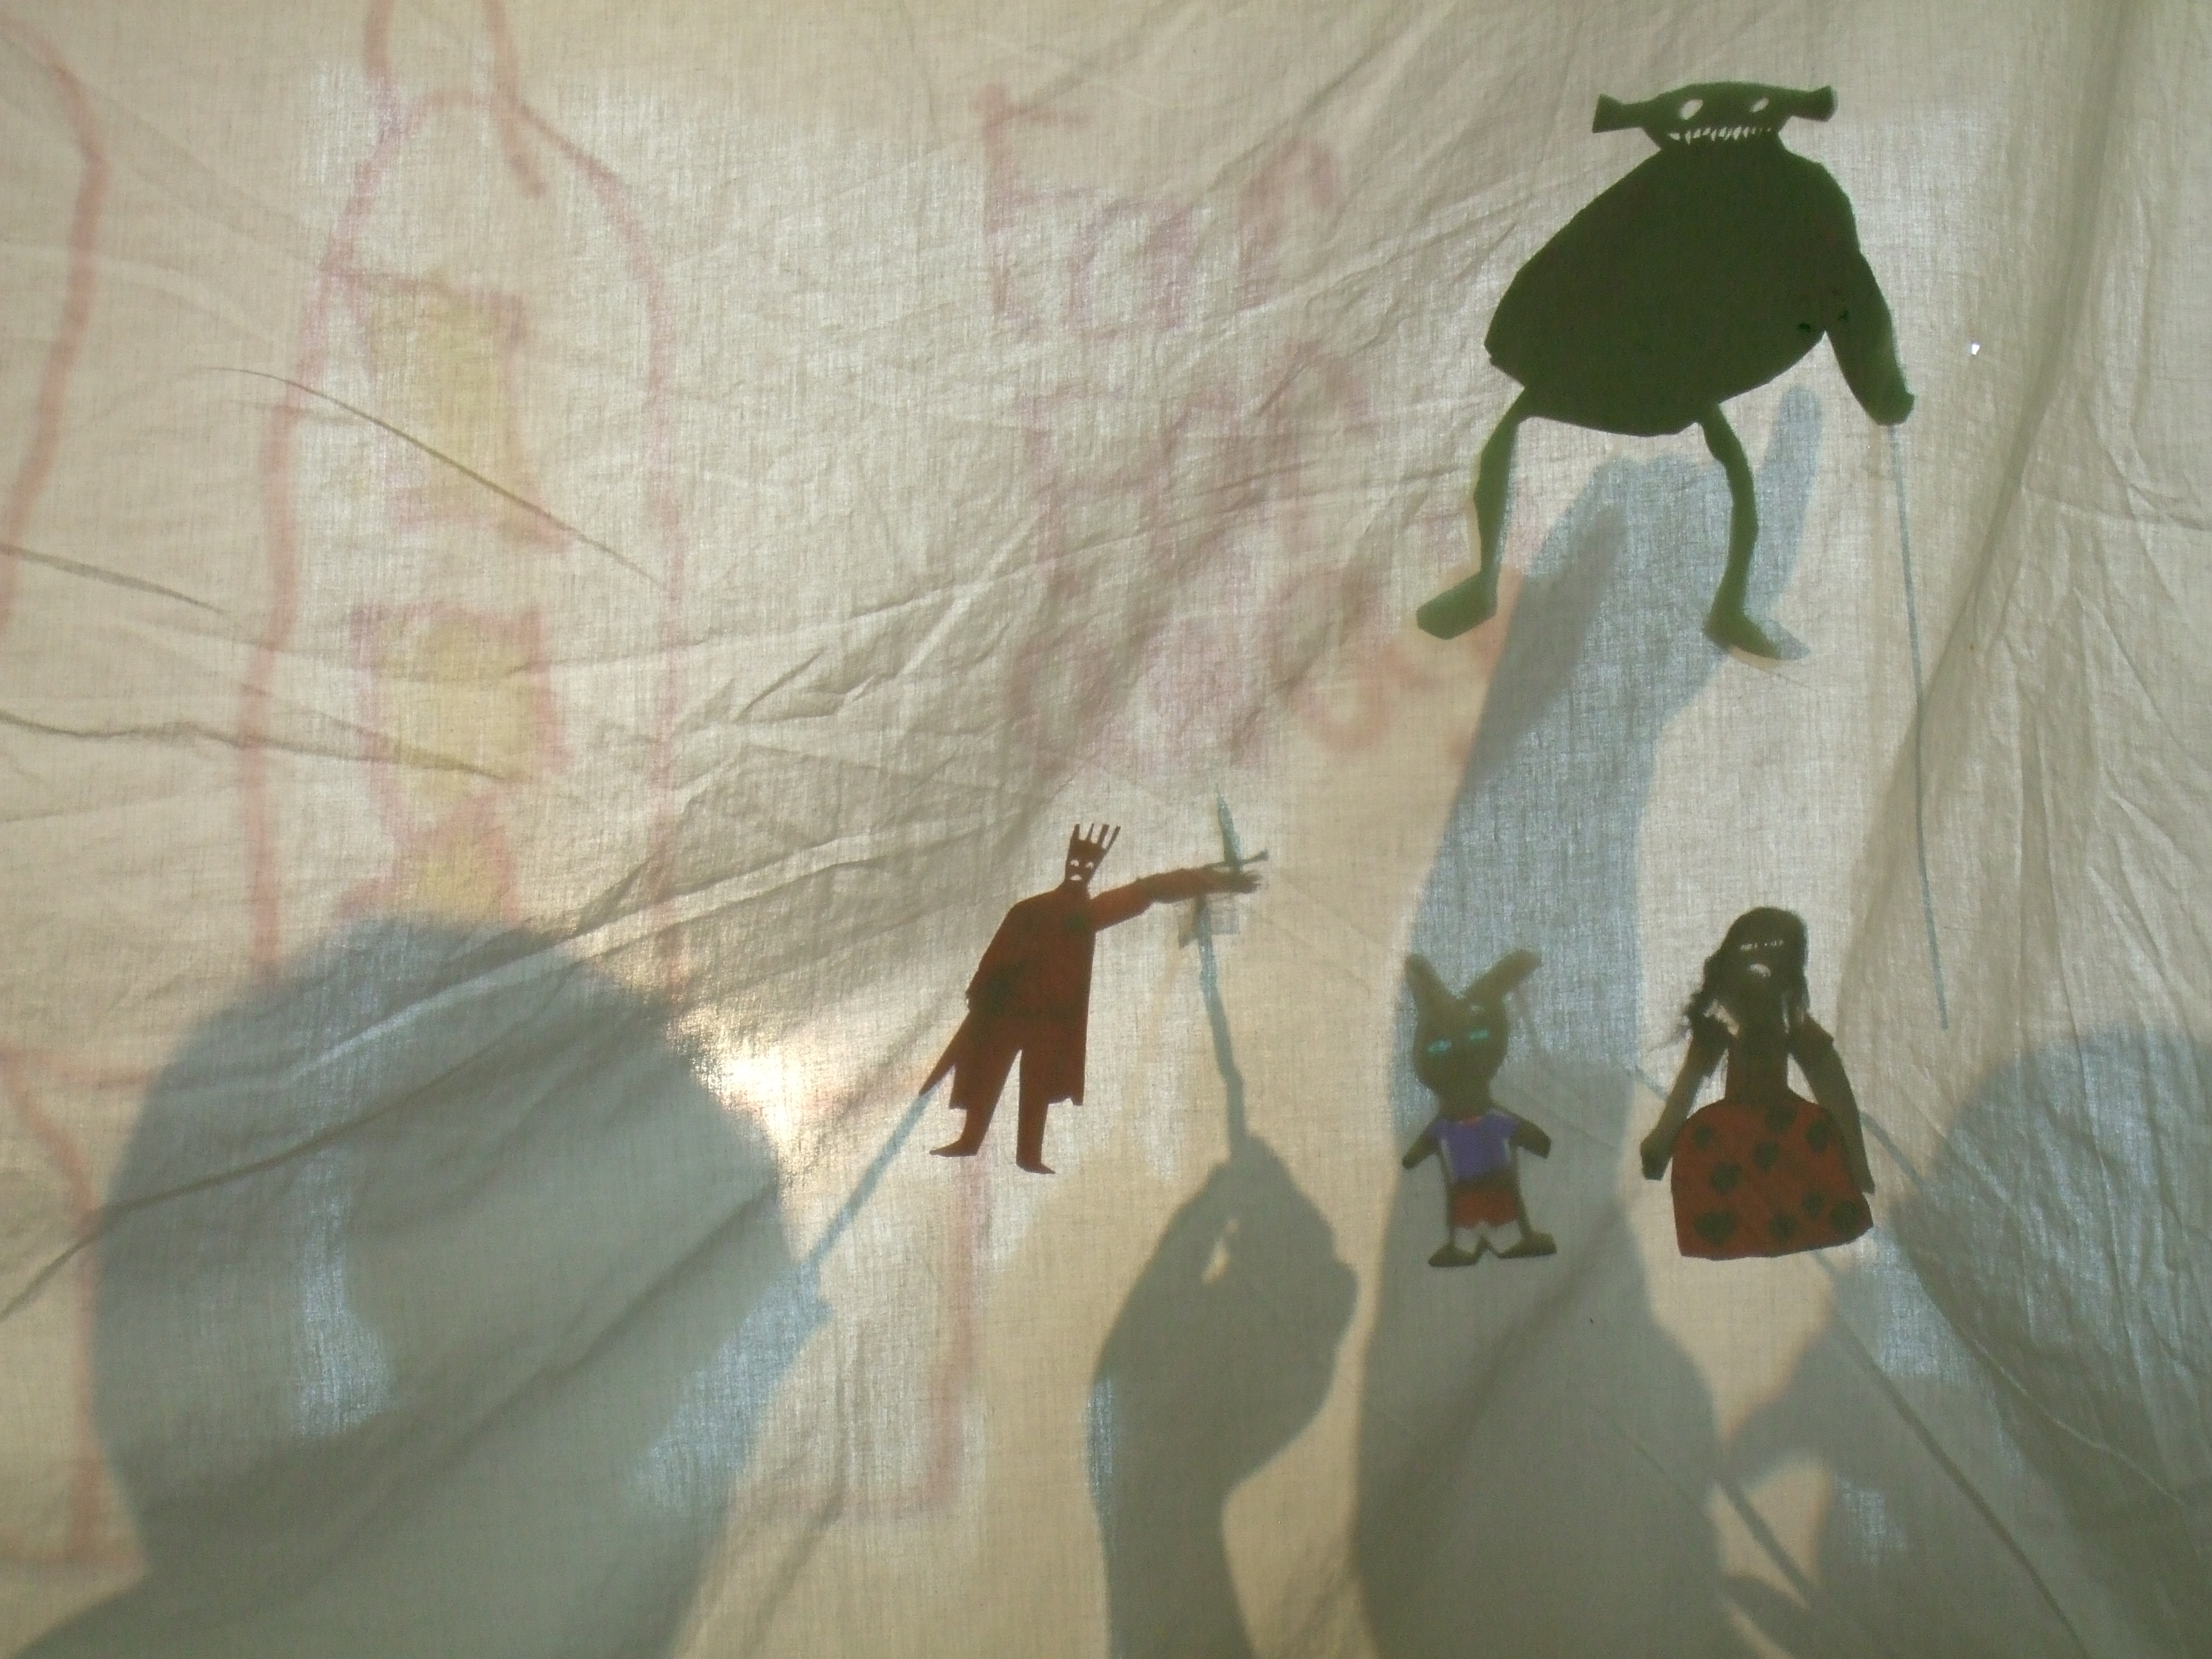 Shadow Puppetry from Dublin City Council's Children's Art In Libraries Programme, Drumcondra